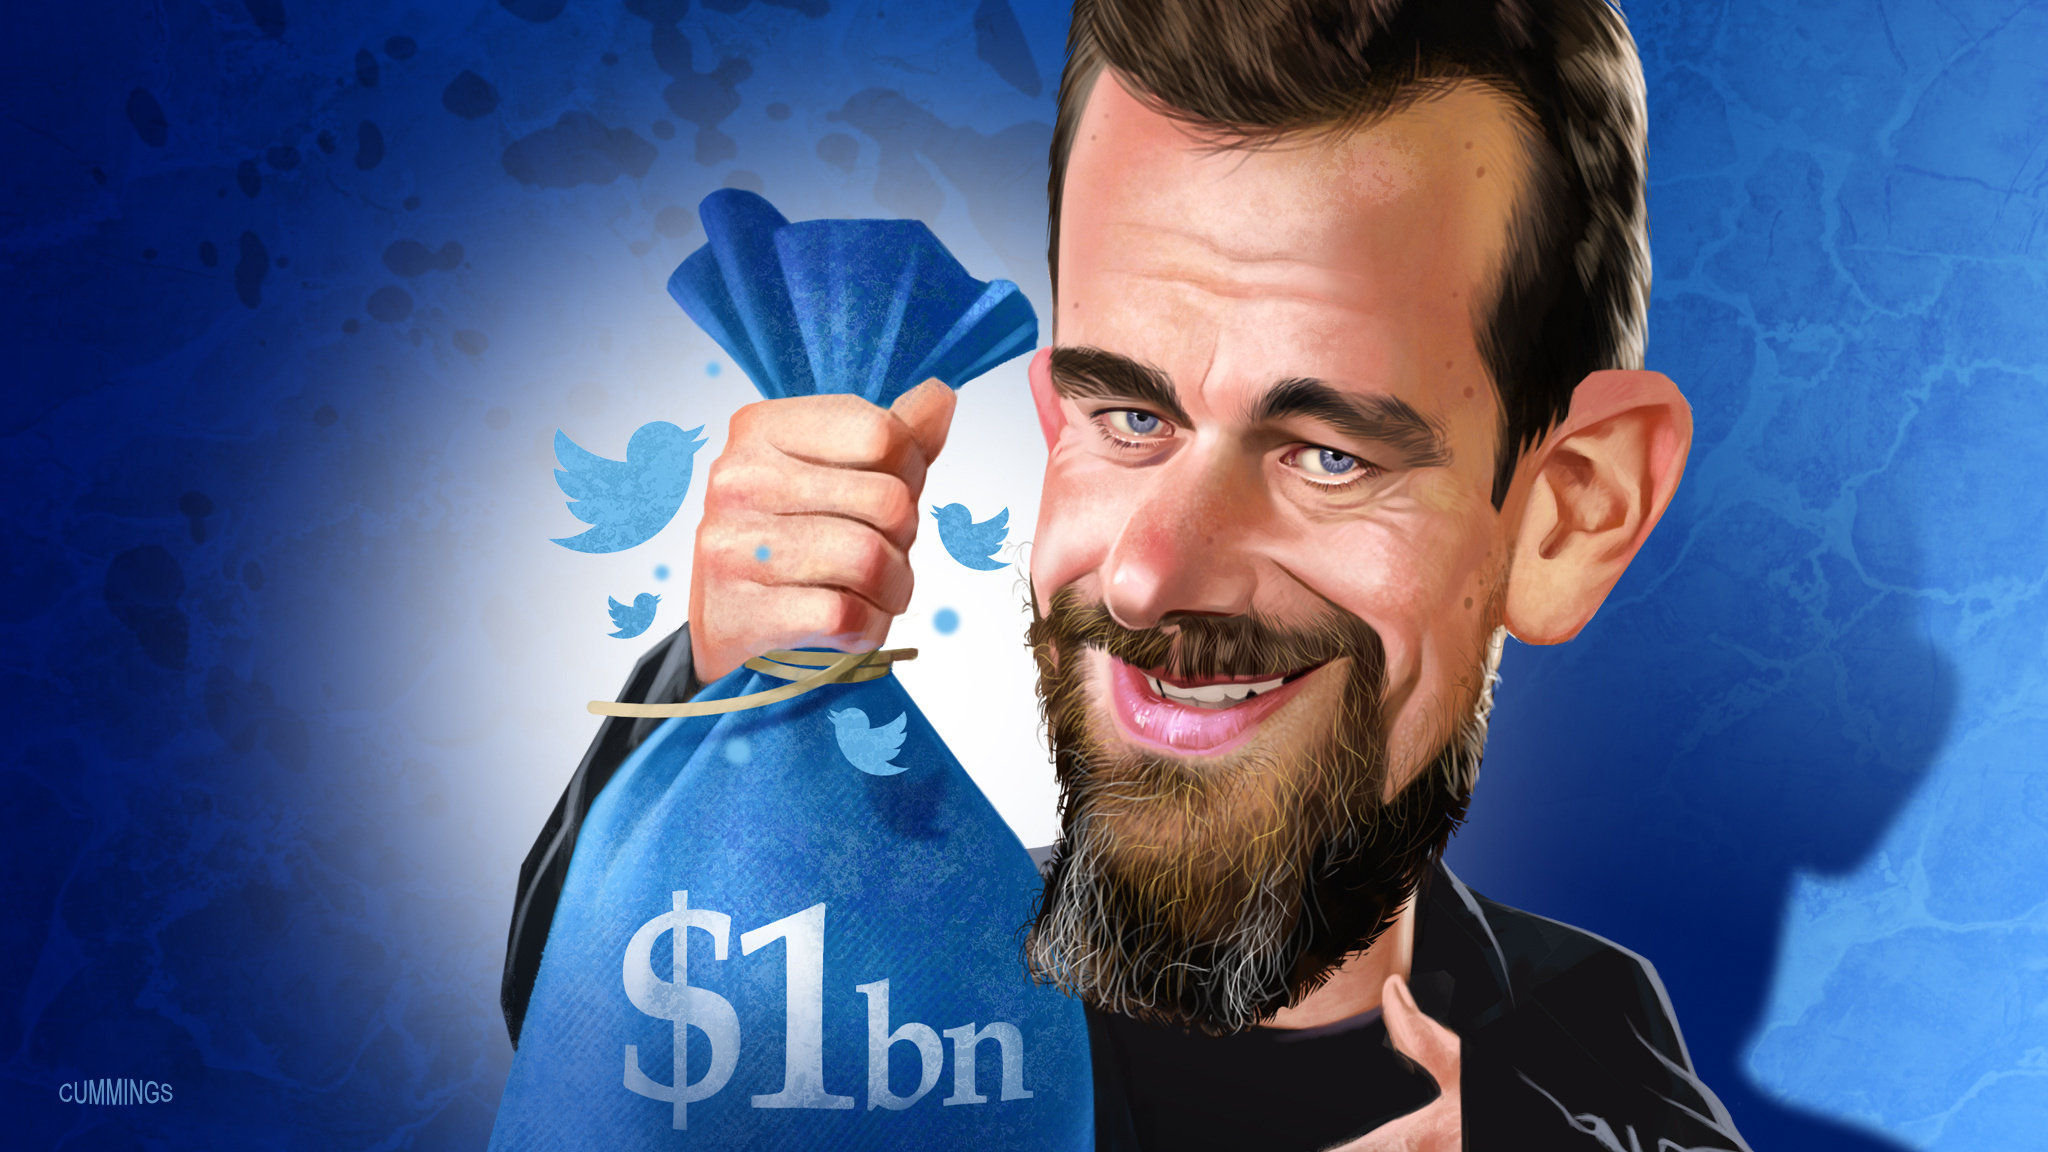 Jack Dorsey The Twitter Founder Shows Tech Bros Can Grow Up Financial Times